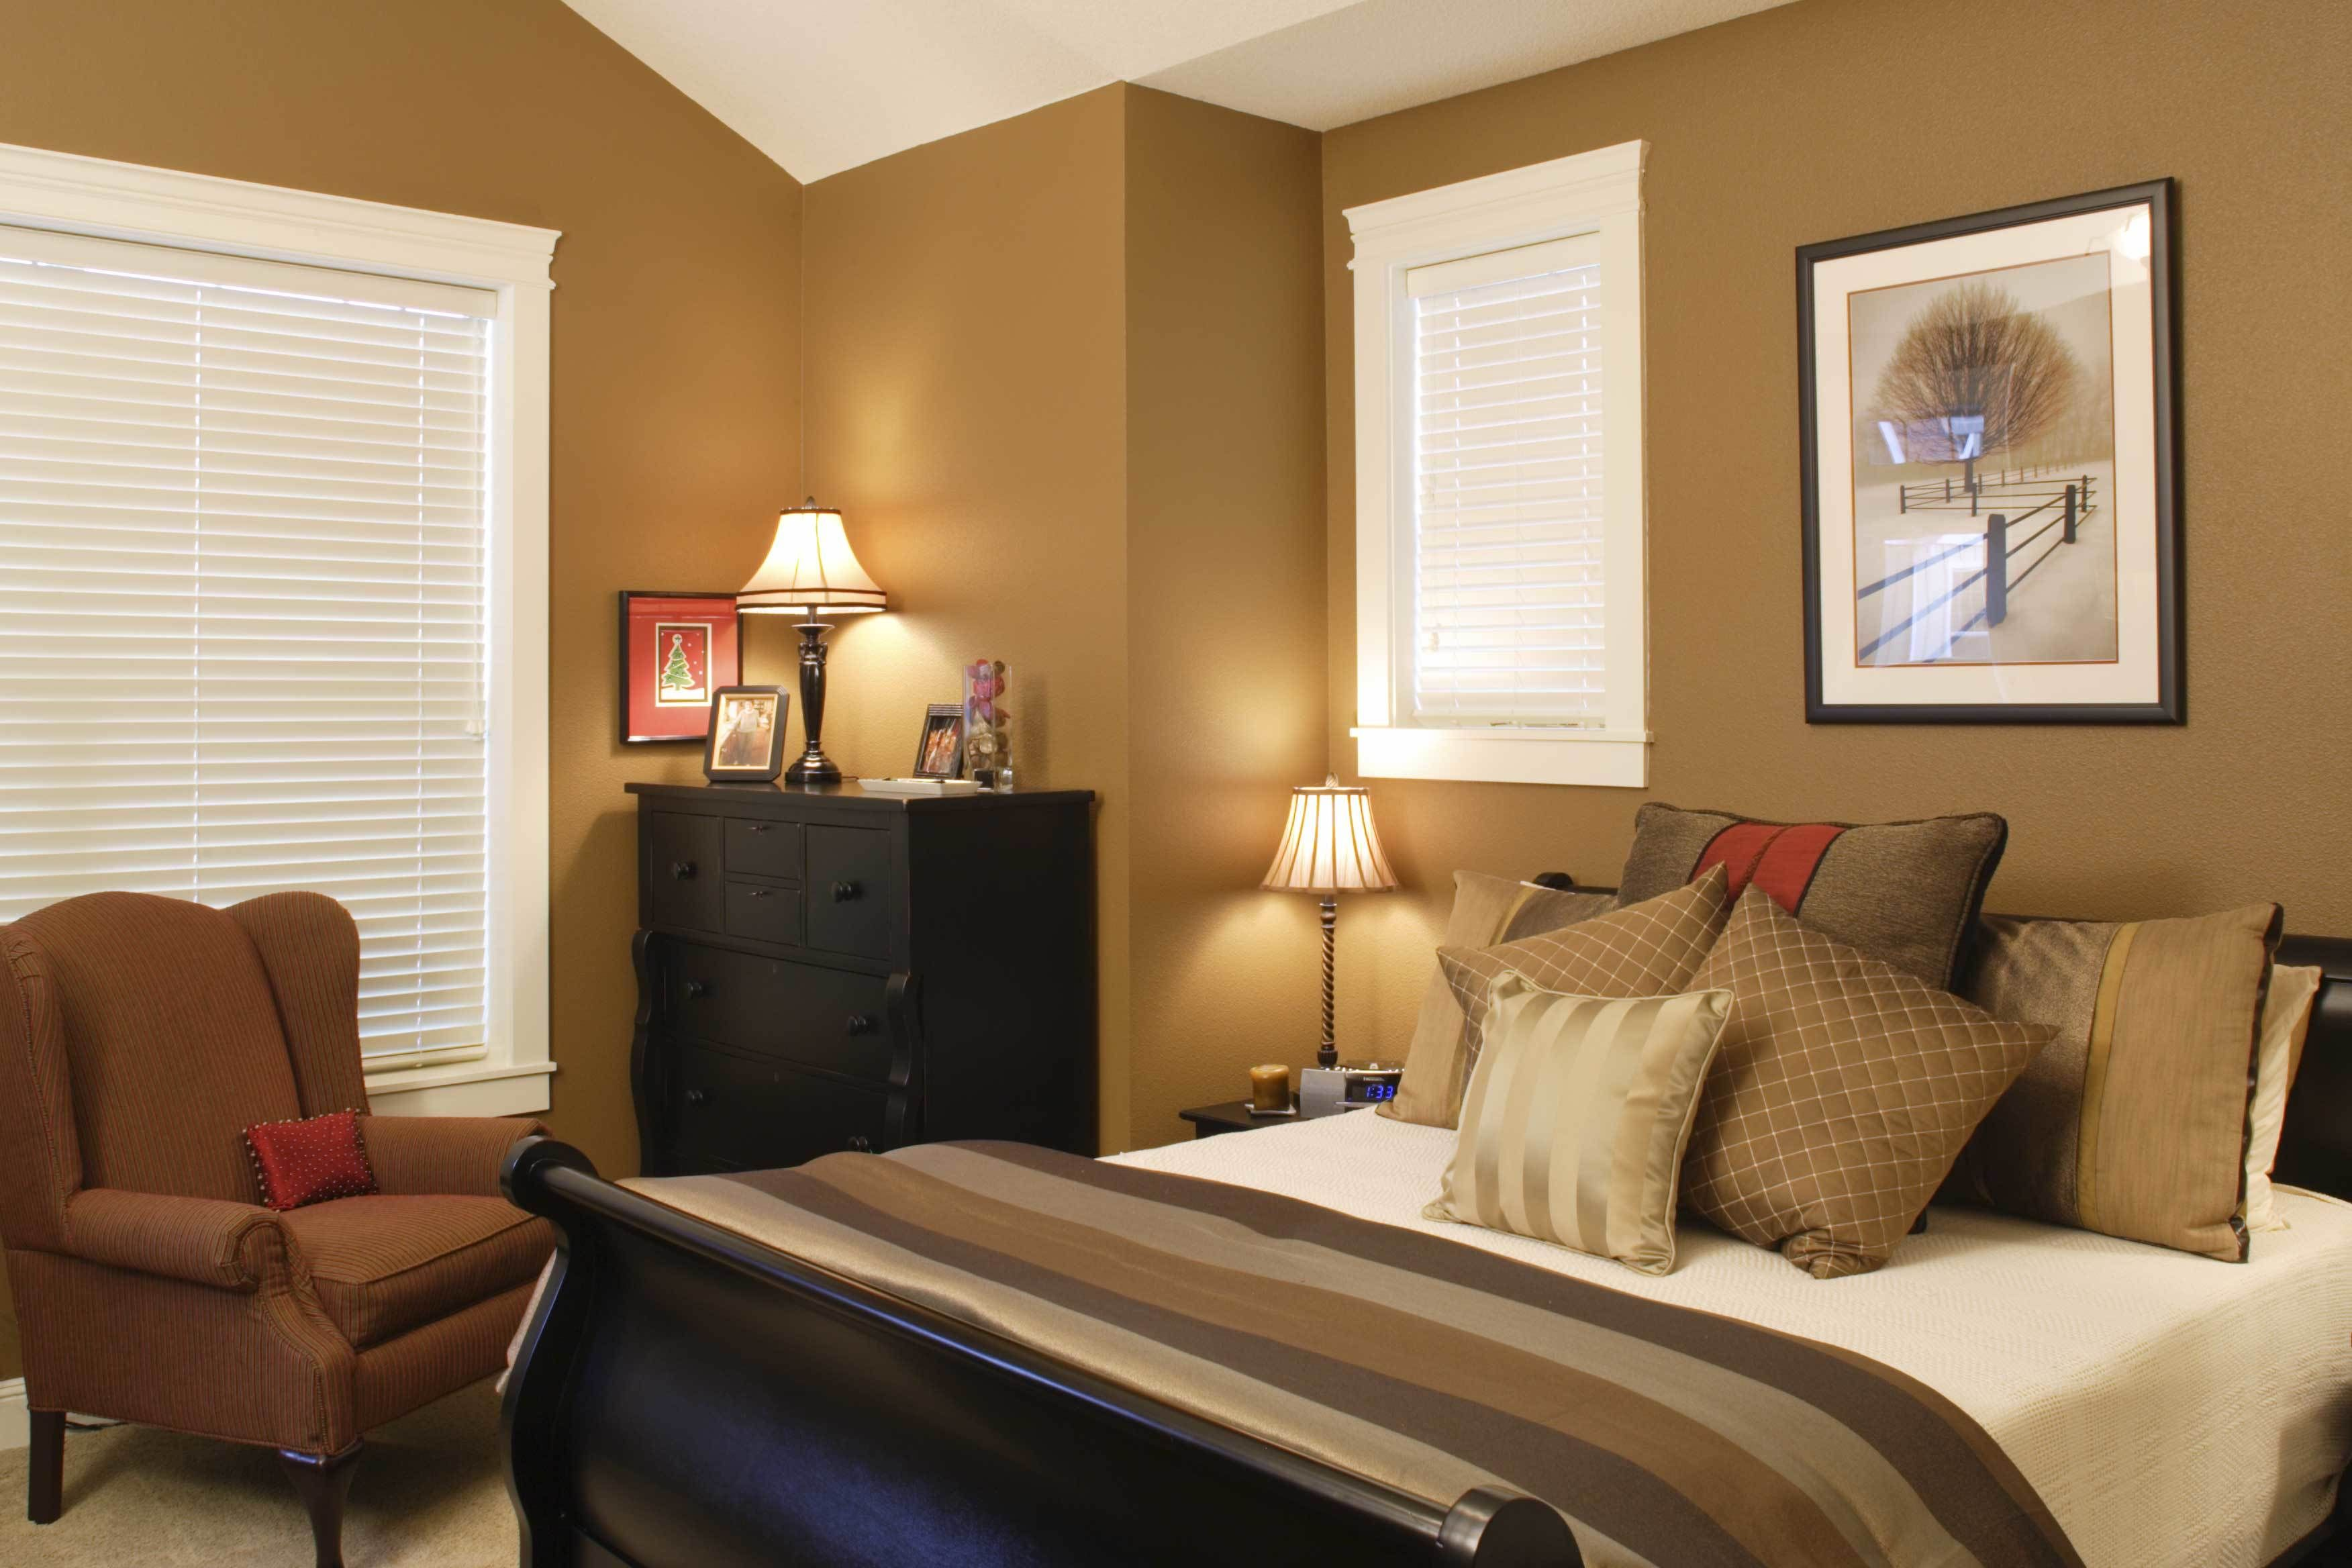 Paint For Bedrooms With Dark Furniture Which Paint Color Goes With Brown Furniture White And Camel